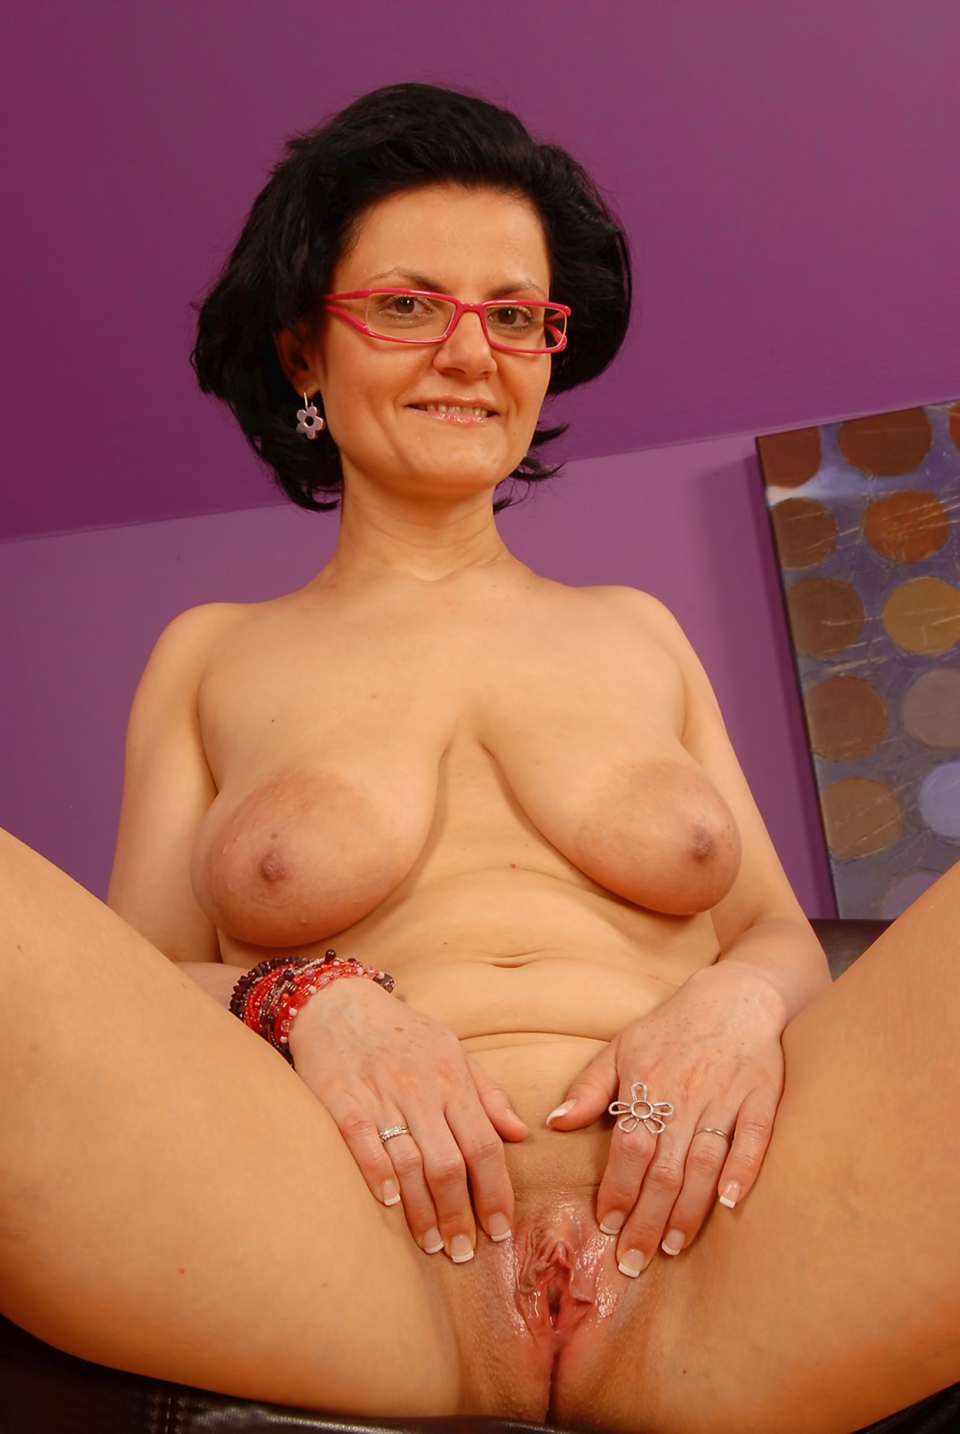 mom with big floppy saggy tits full resolution image